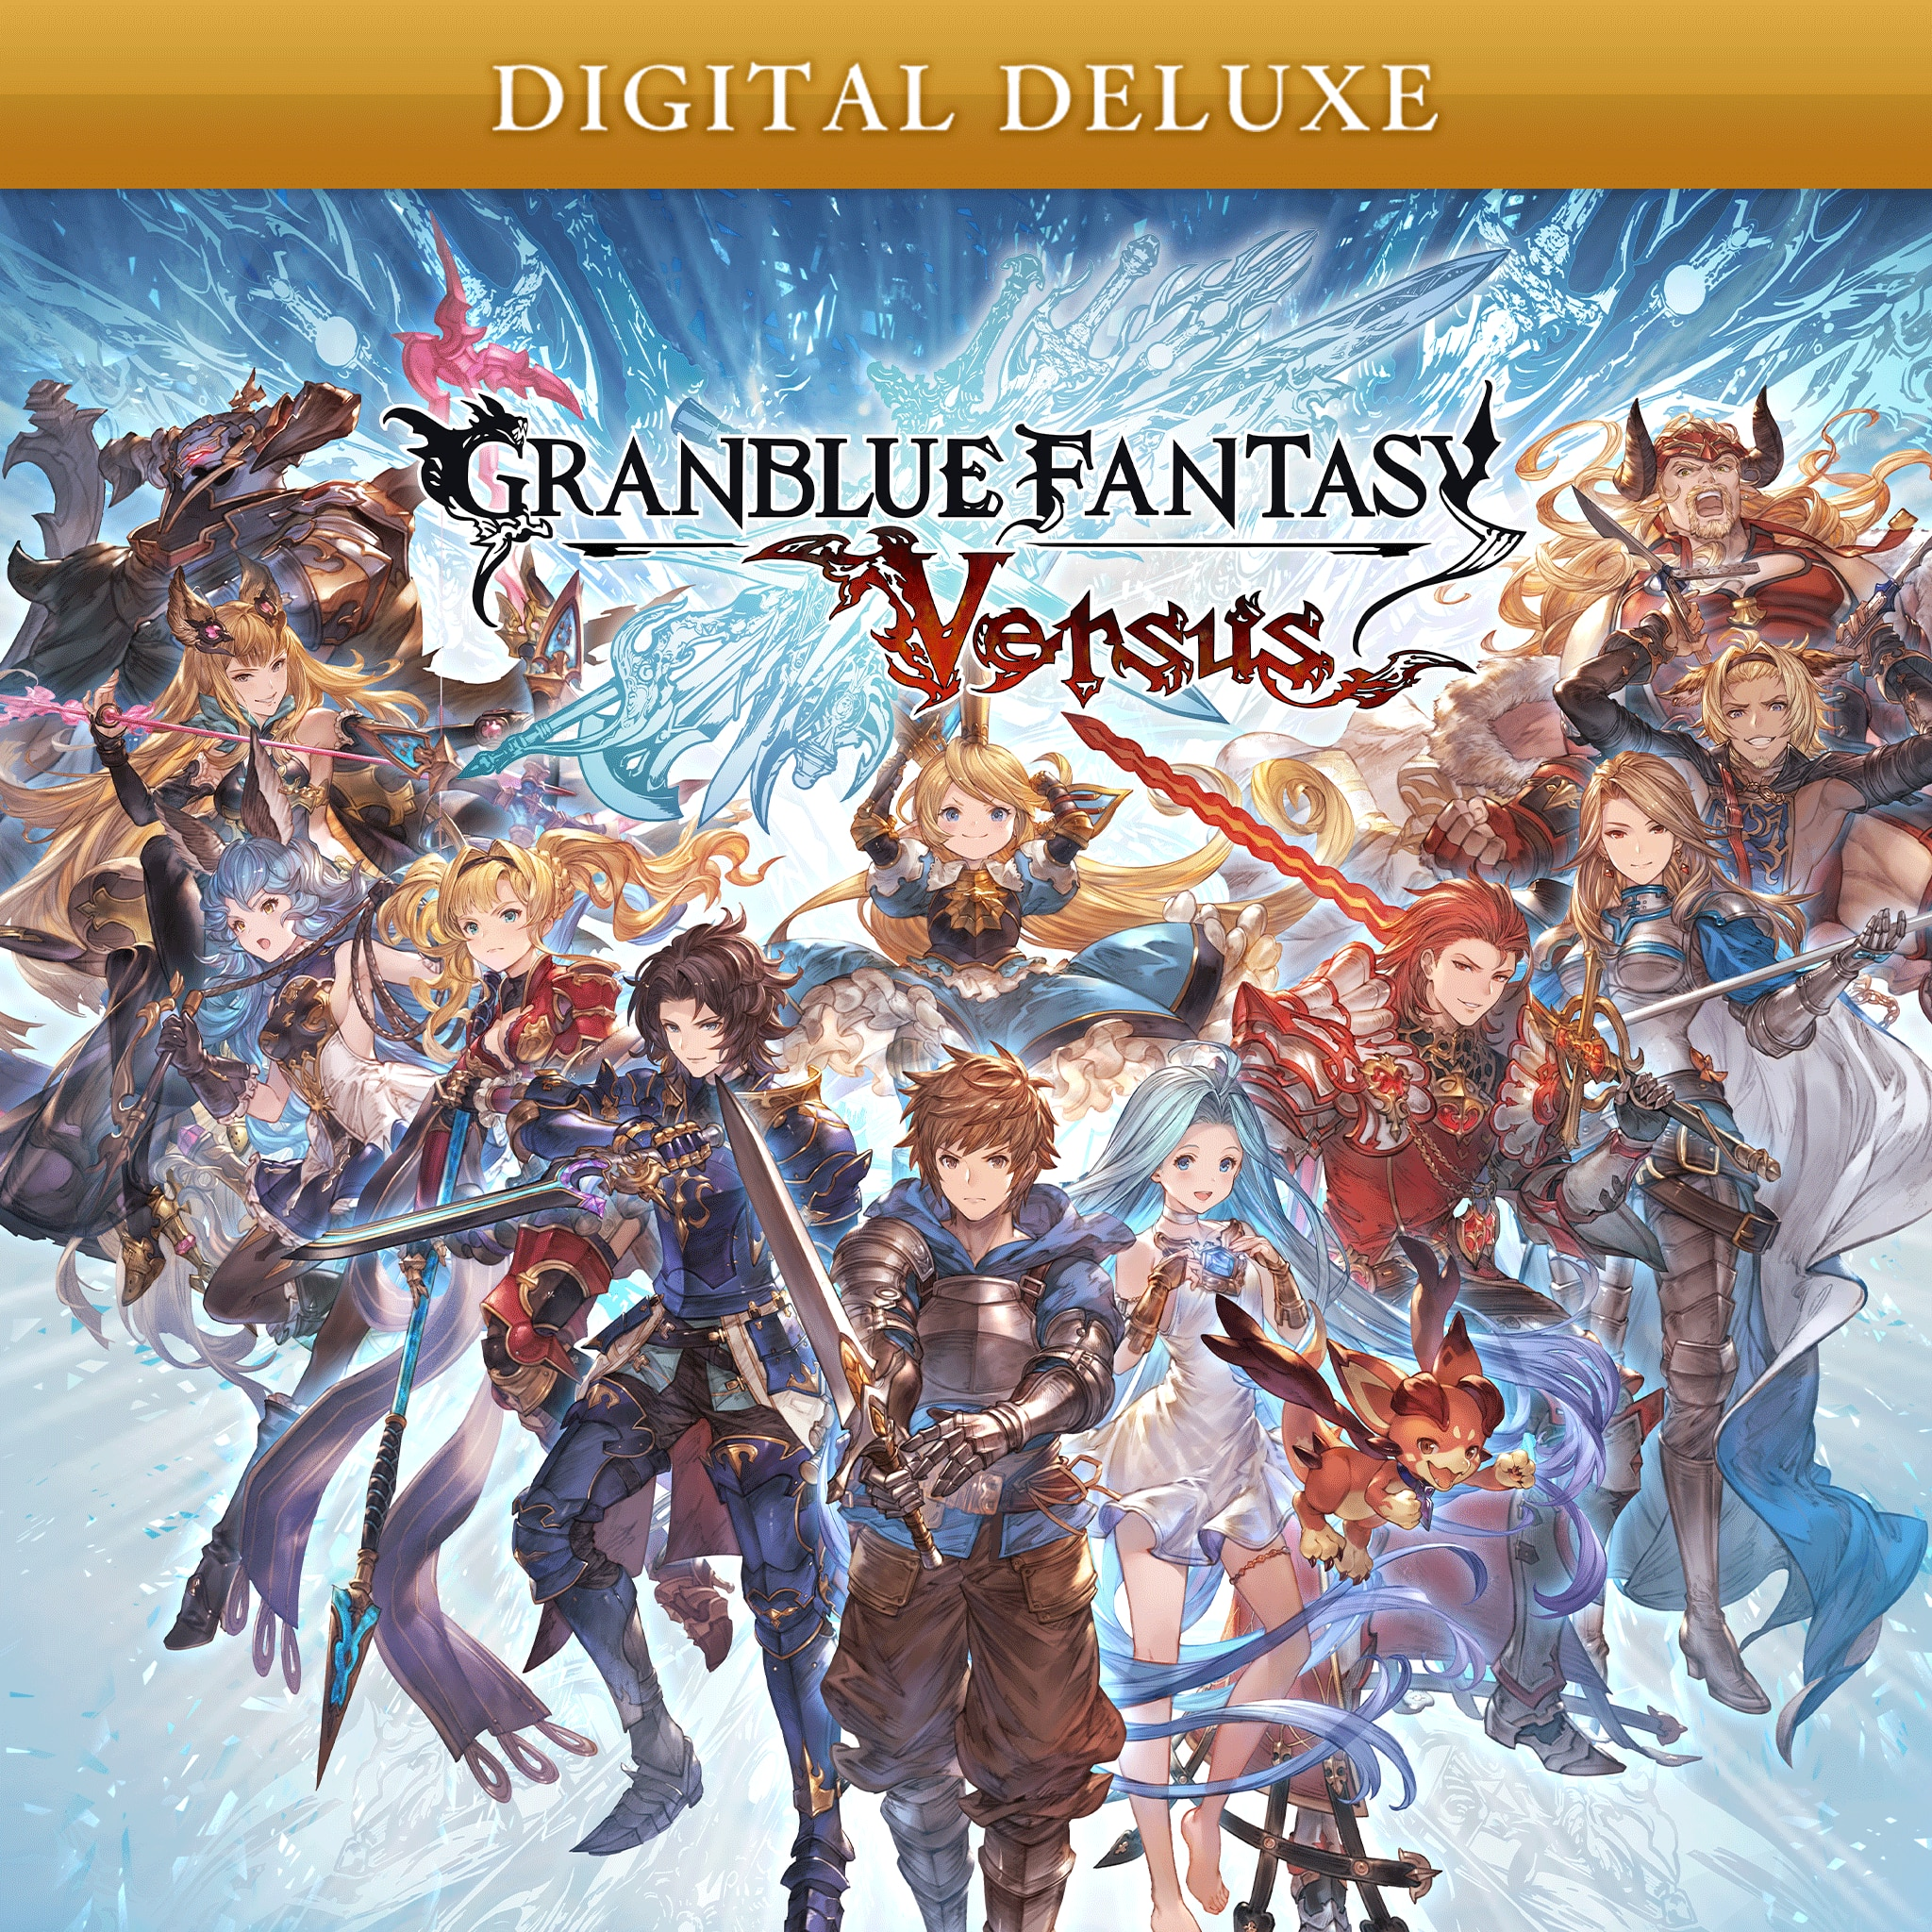 Granblue Fantasy: Versus — Digital Deluxe Edition